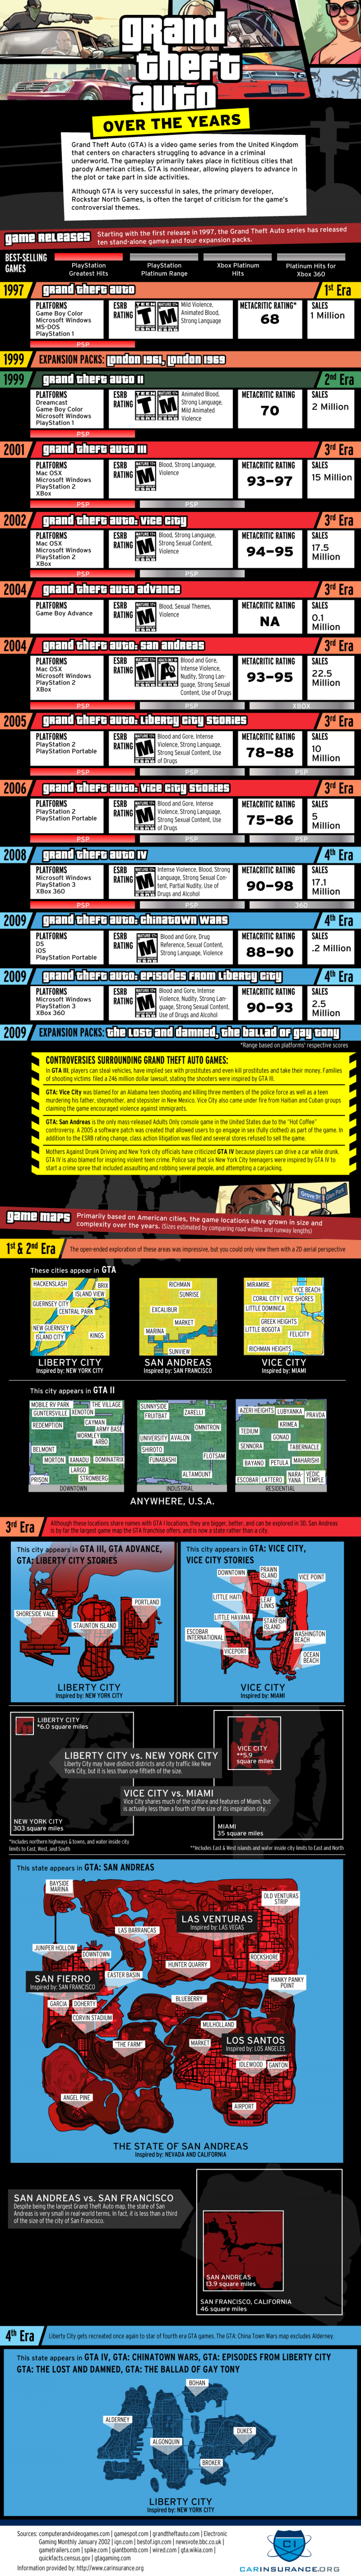 Grand Theft Auto Over The Years Infographic